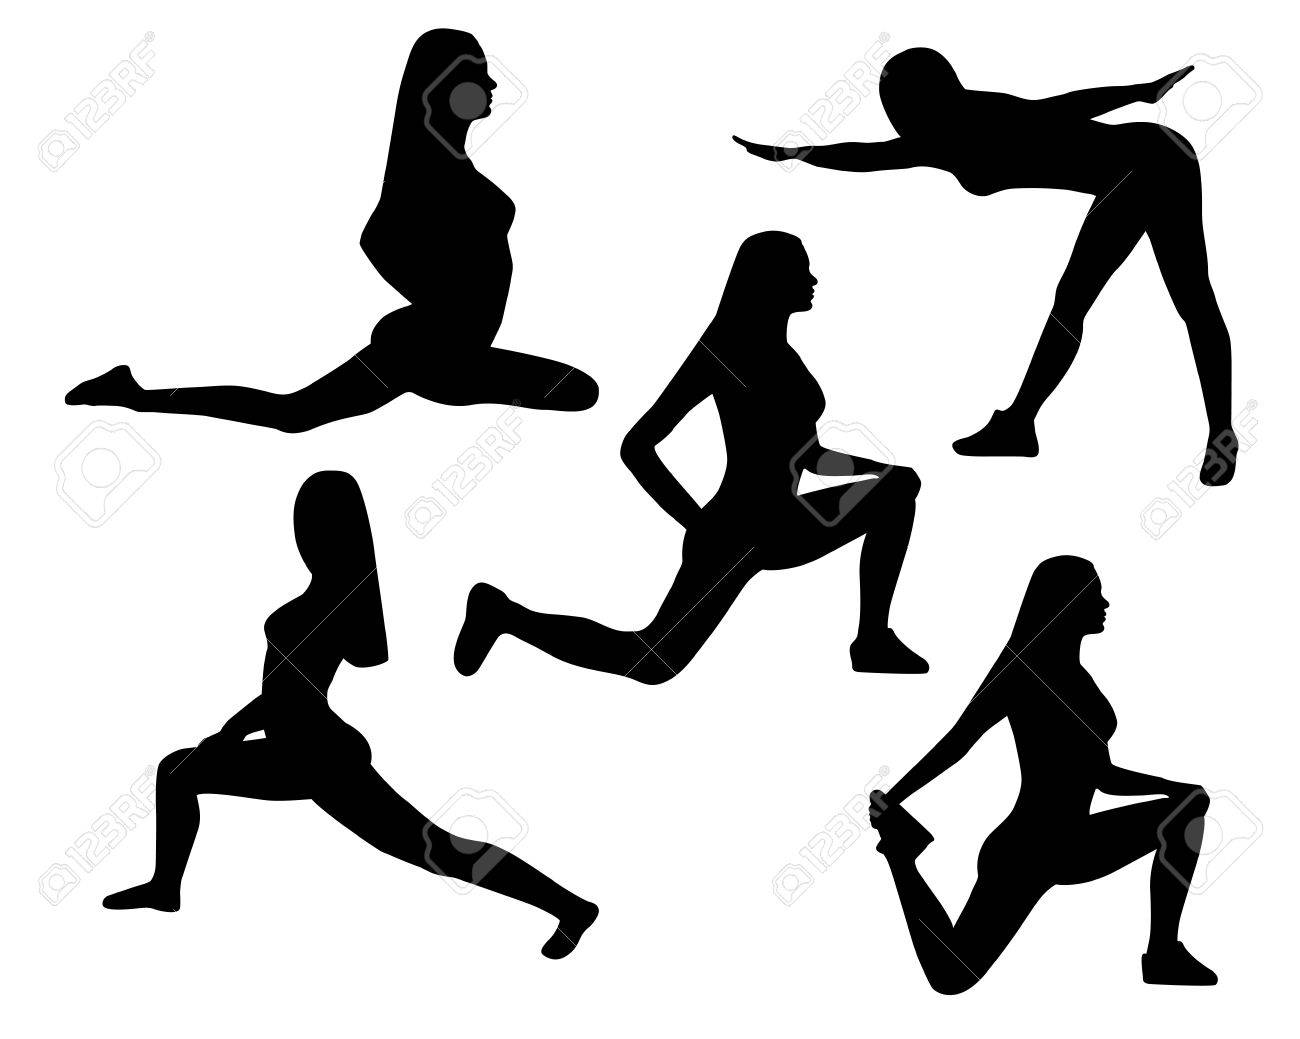 Black silhouettes of women in yoga poses and sport exercises isolated on a white background